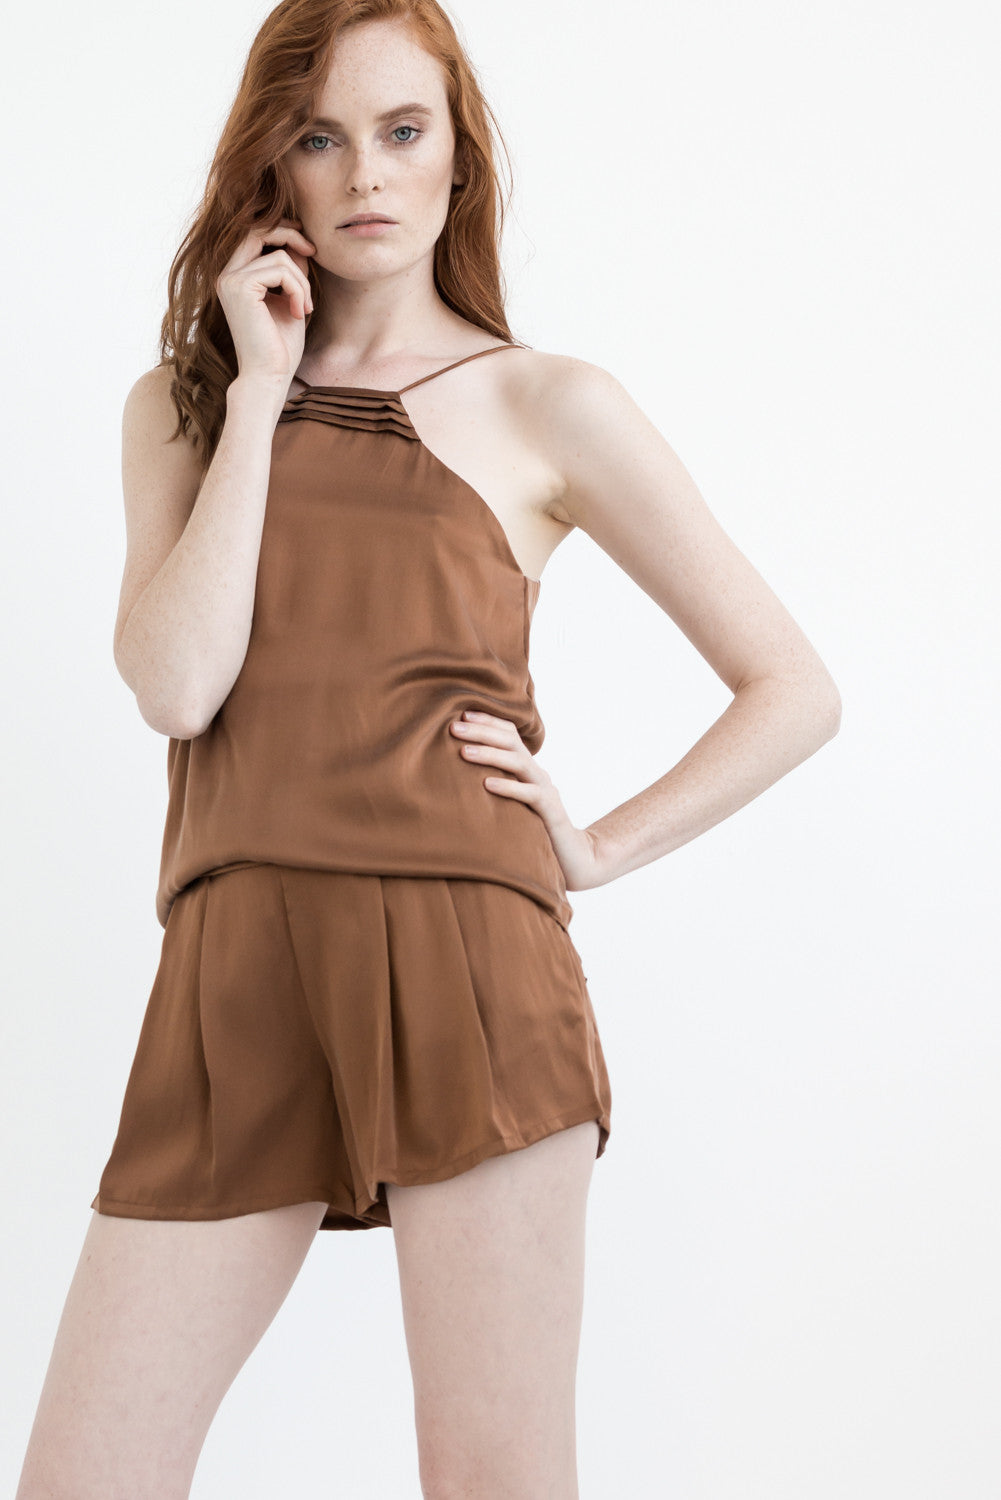 TWO PIECE SET: BROWN LOVE 2 in 1 CAMISOLE